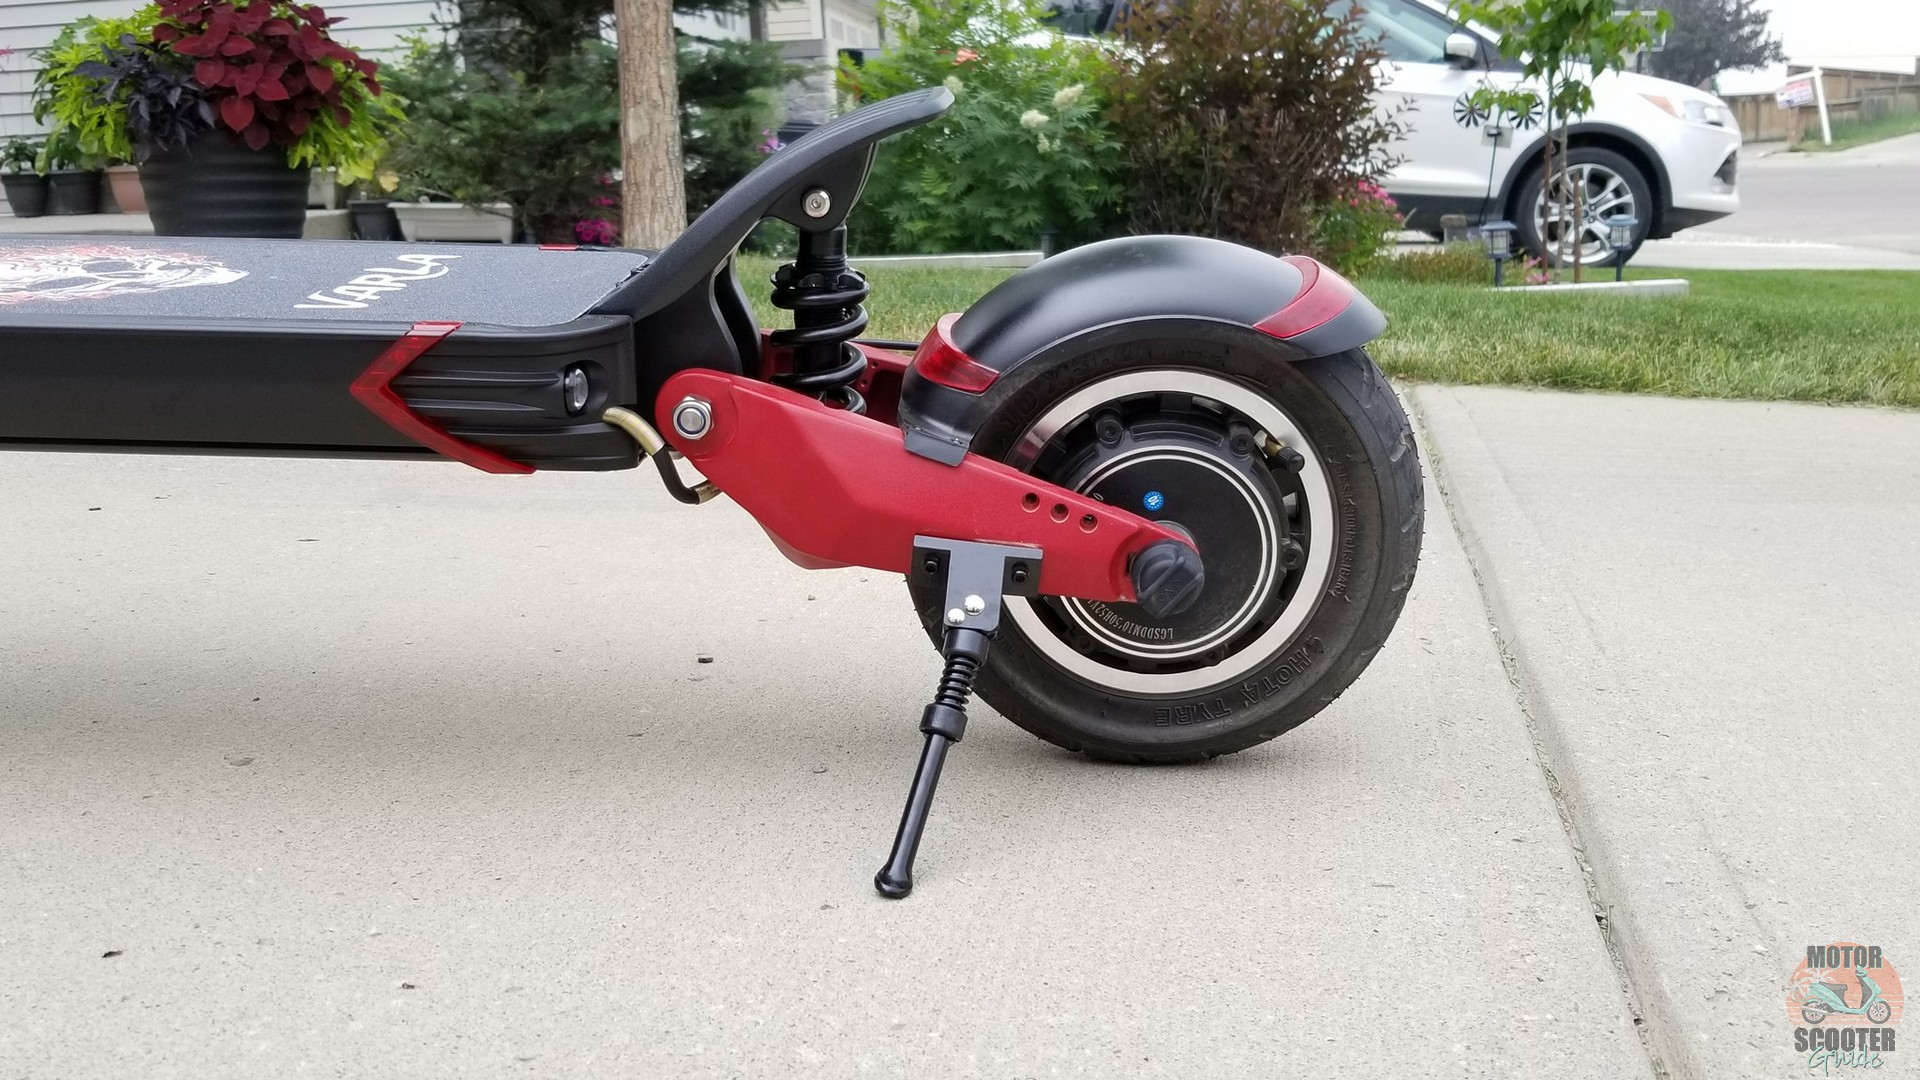 Eagle One scooter with kickstand in position